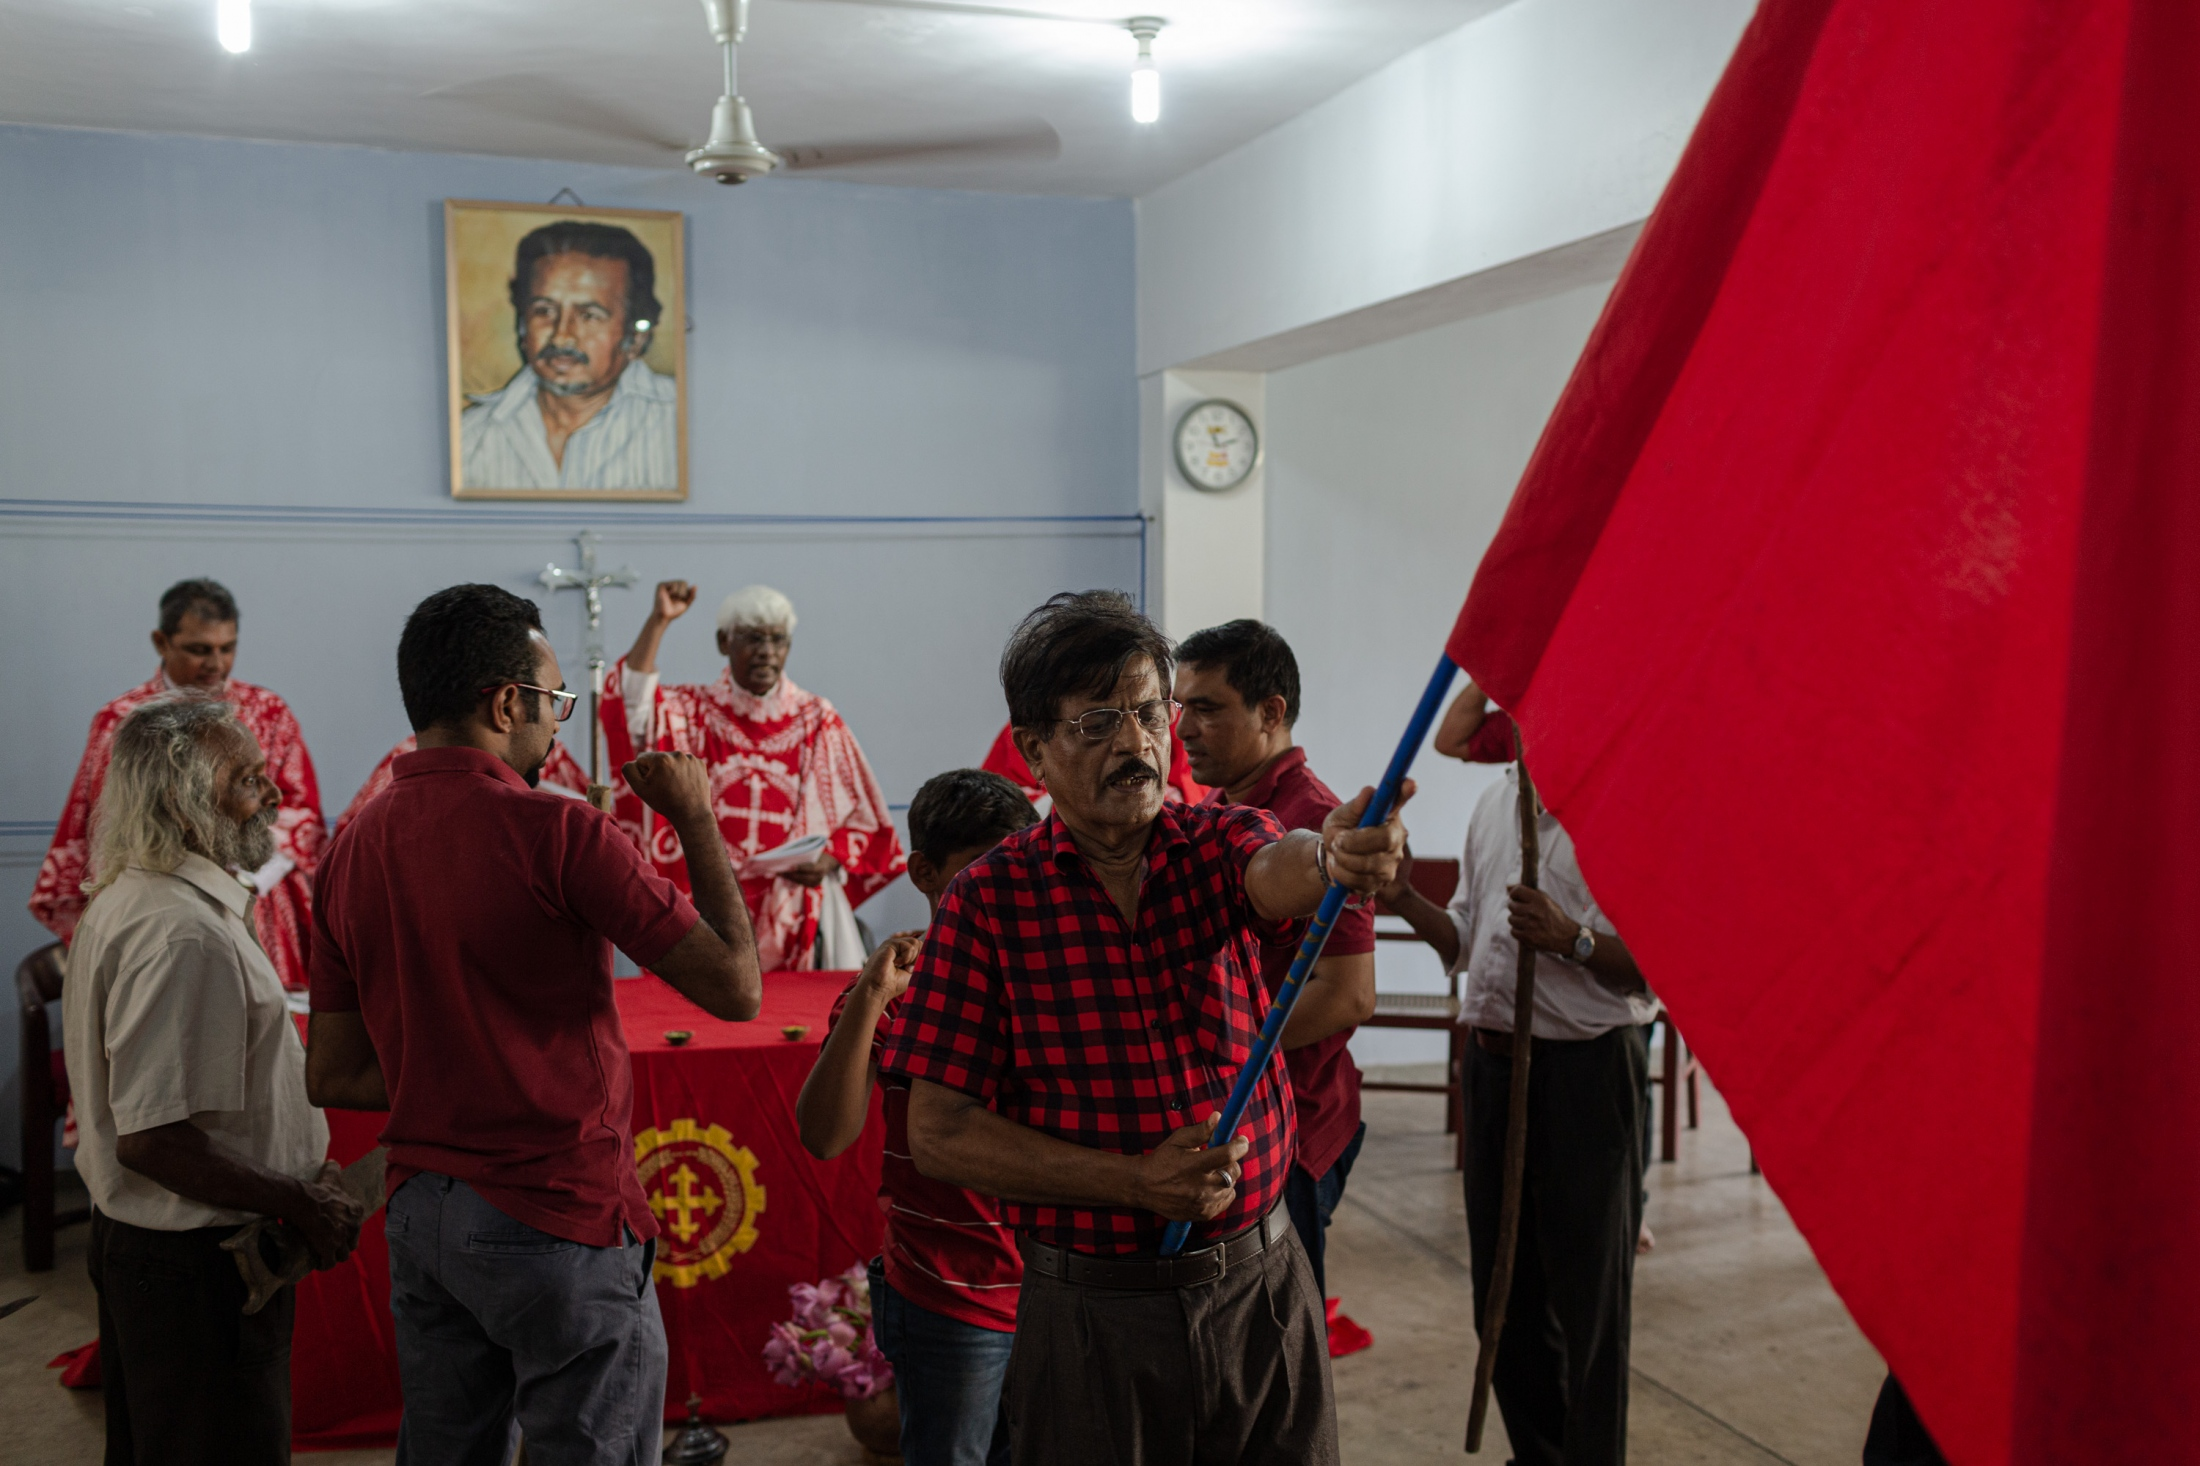 A secret meeting of the Socialist Christian Church in Colombo, at a time when all gatherings of people and religious ceremonies were banned under the emergency laws. (May, 2019)